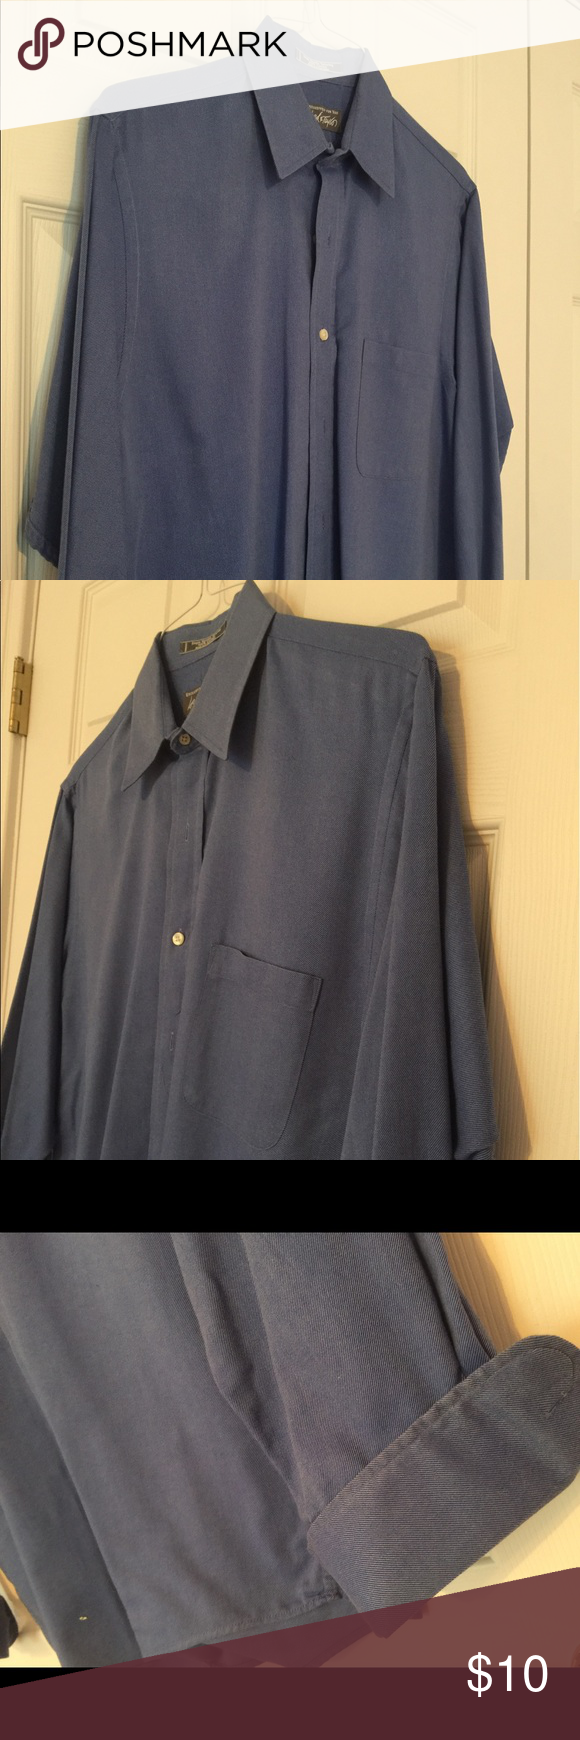 Men's Dresden-blue French cuff dress shirt Very pretty Dresden-blue dress shirt with French cuffs. Good condition and would be perfect under a nice men's suit! Lord & Taylor Shirts Dress Shirts